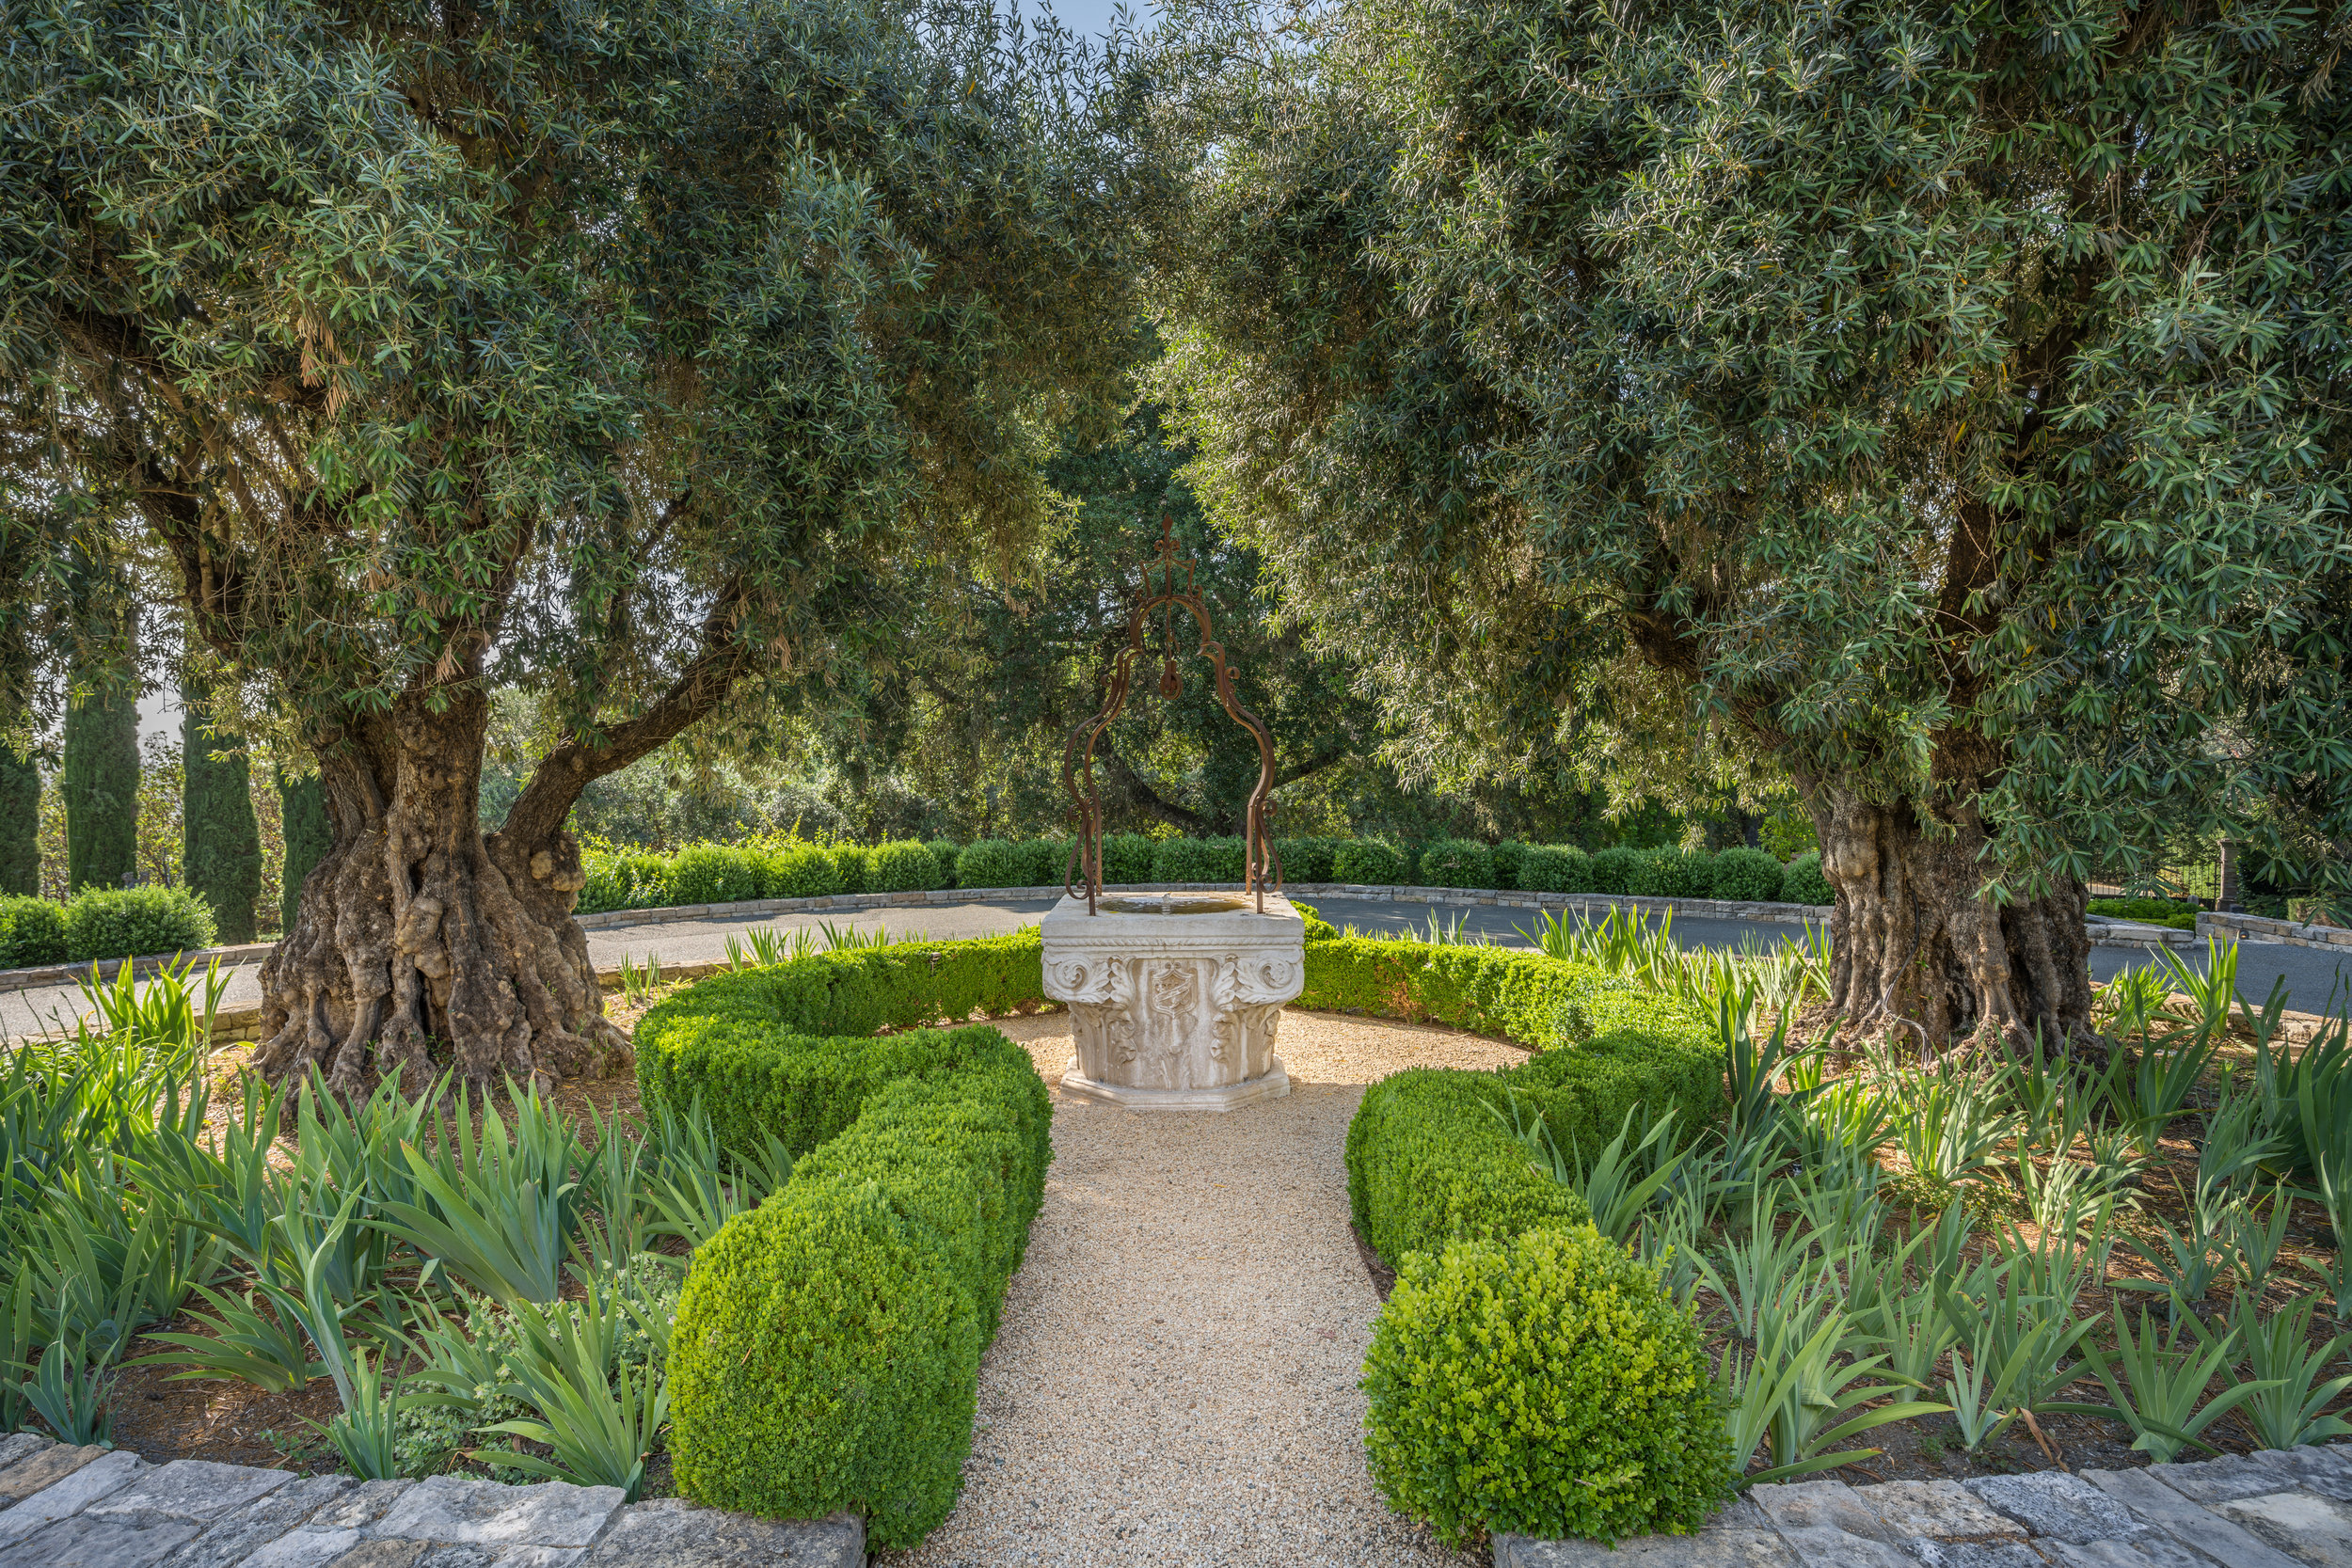 Ancient olive trees and historic well are the centerpiece of the entrance.